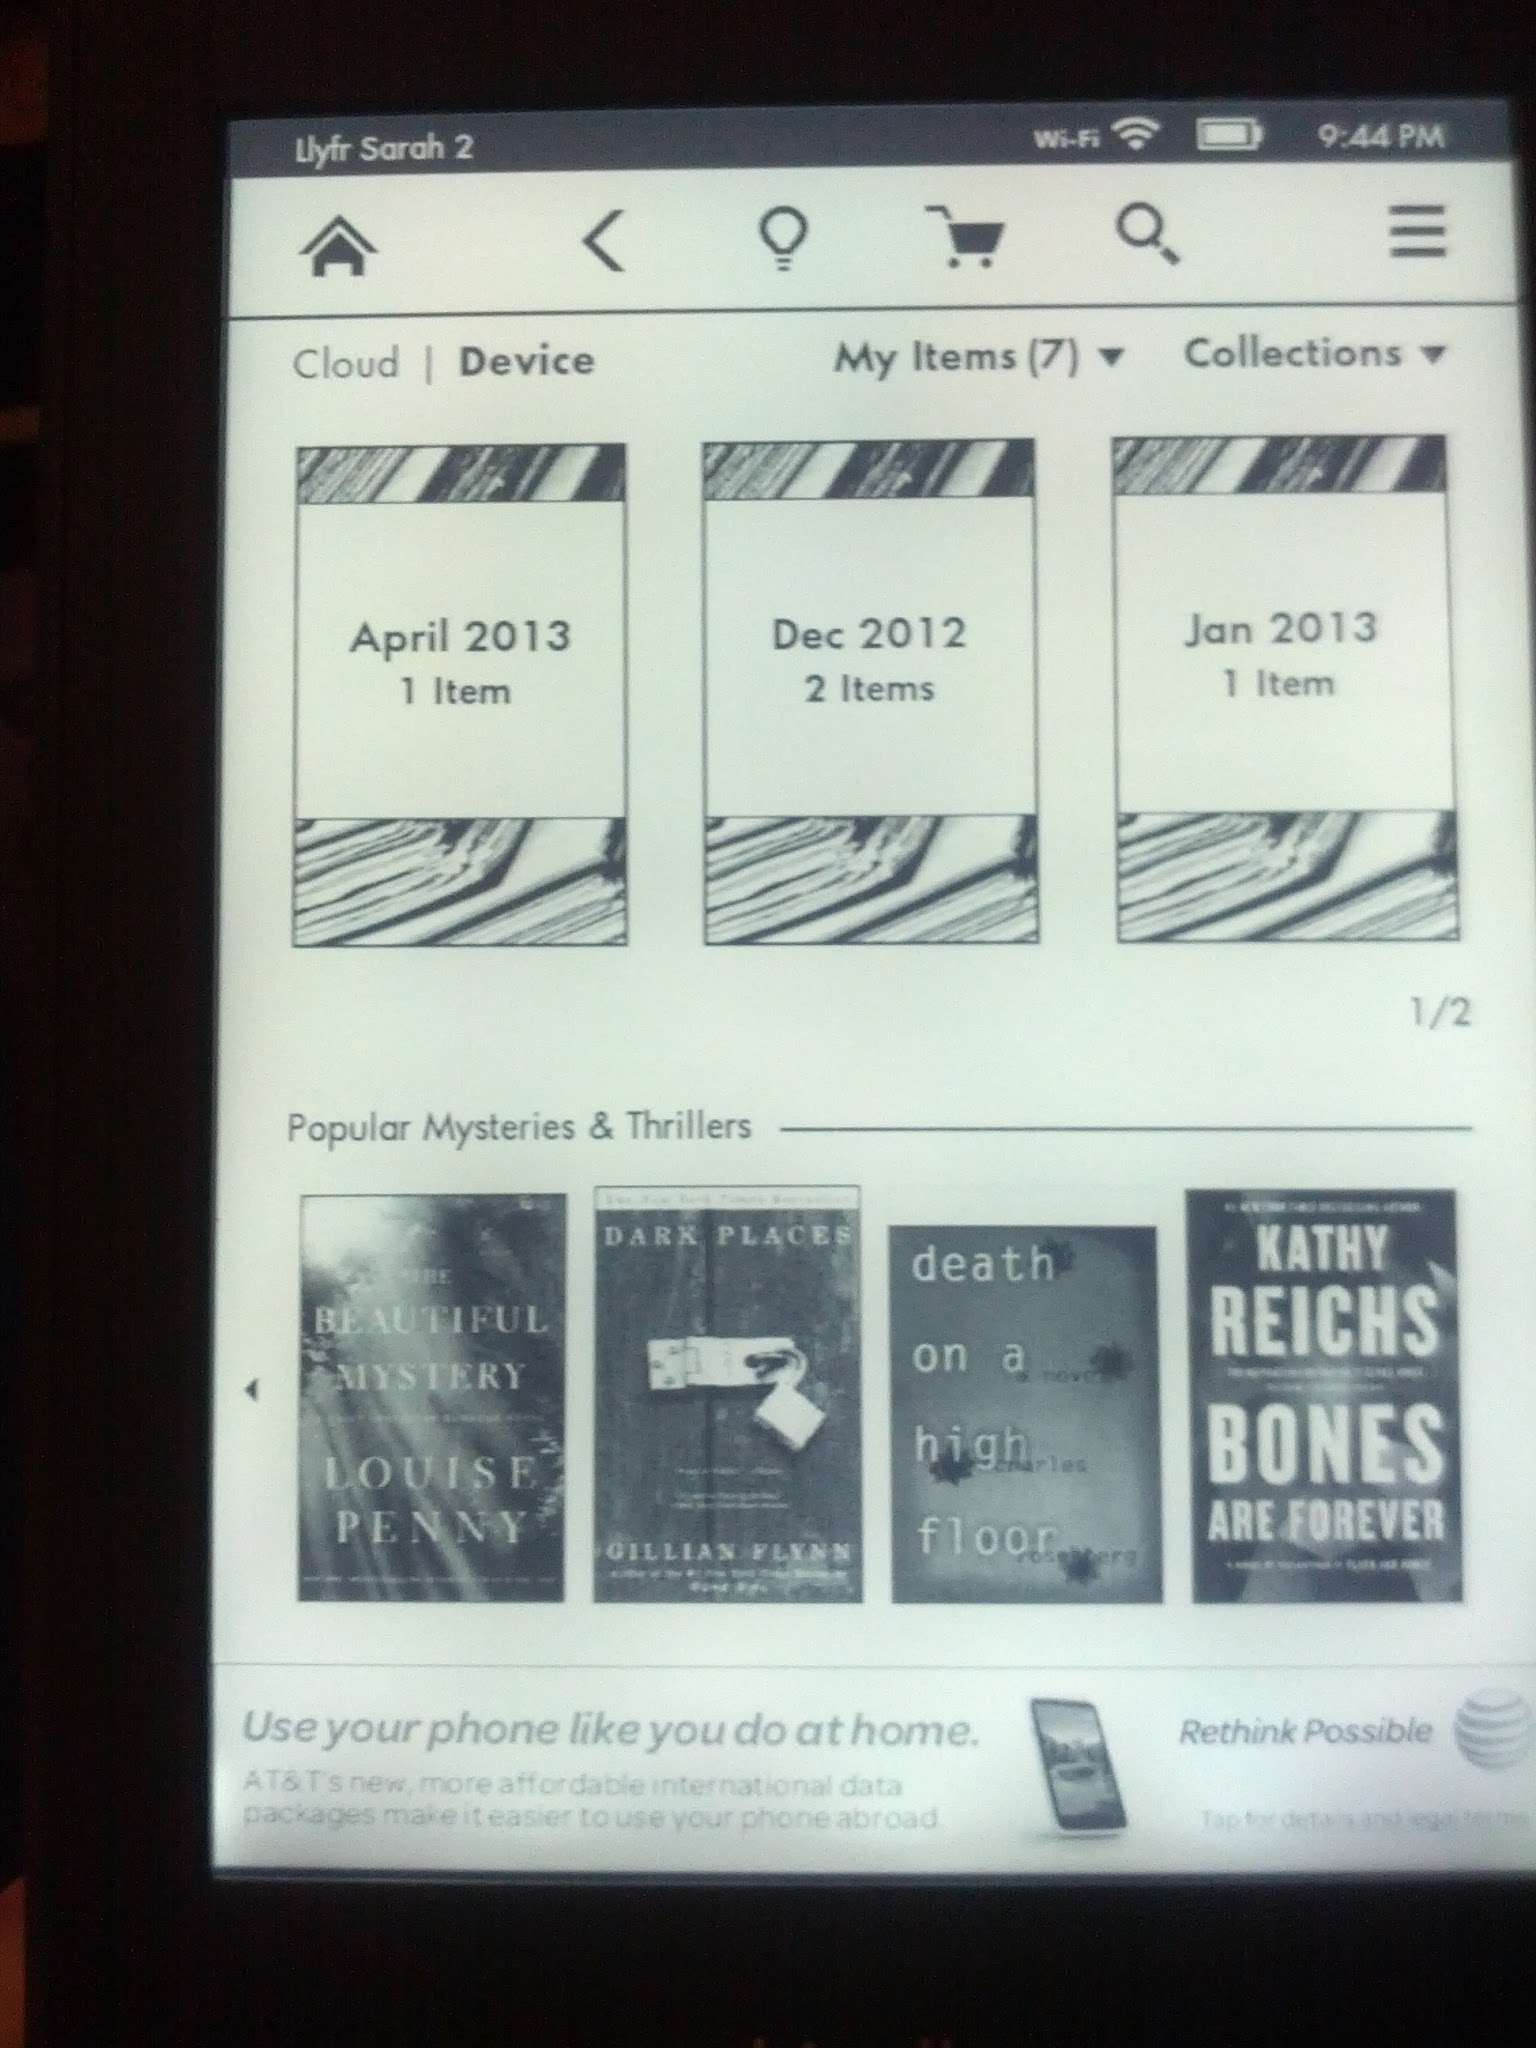 Main screen of Kindle - my collections, and promoted items at the bottom.